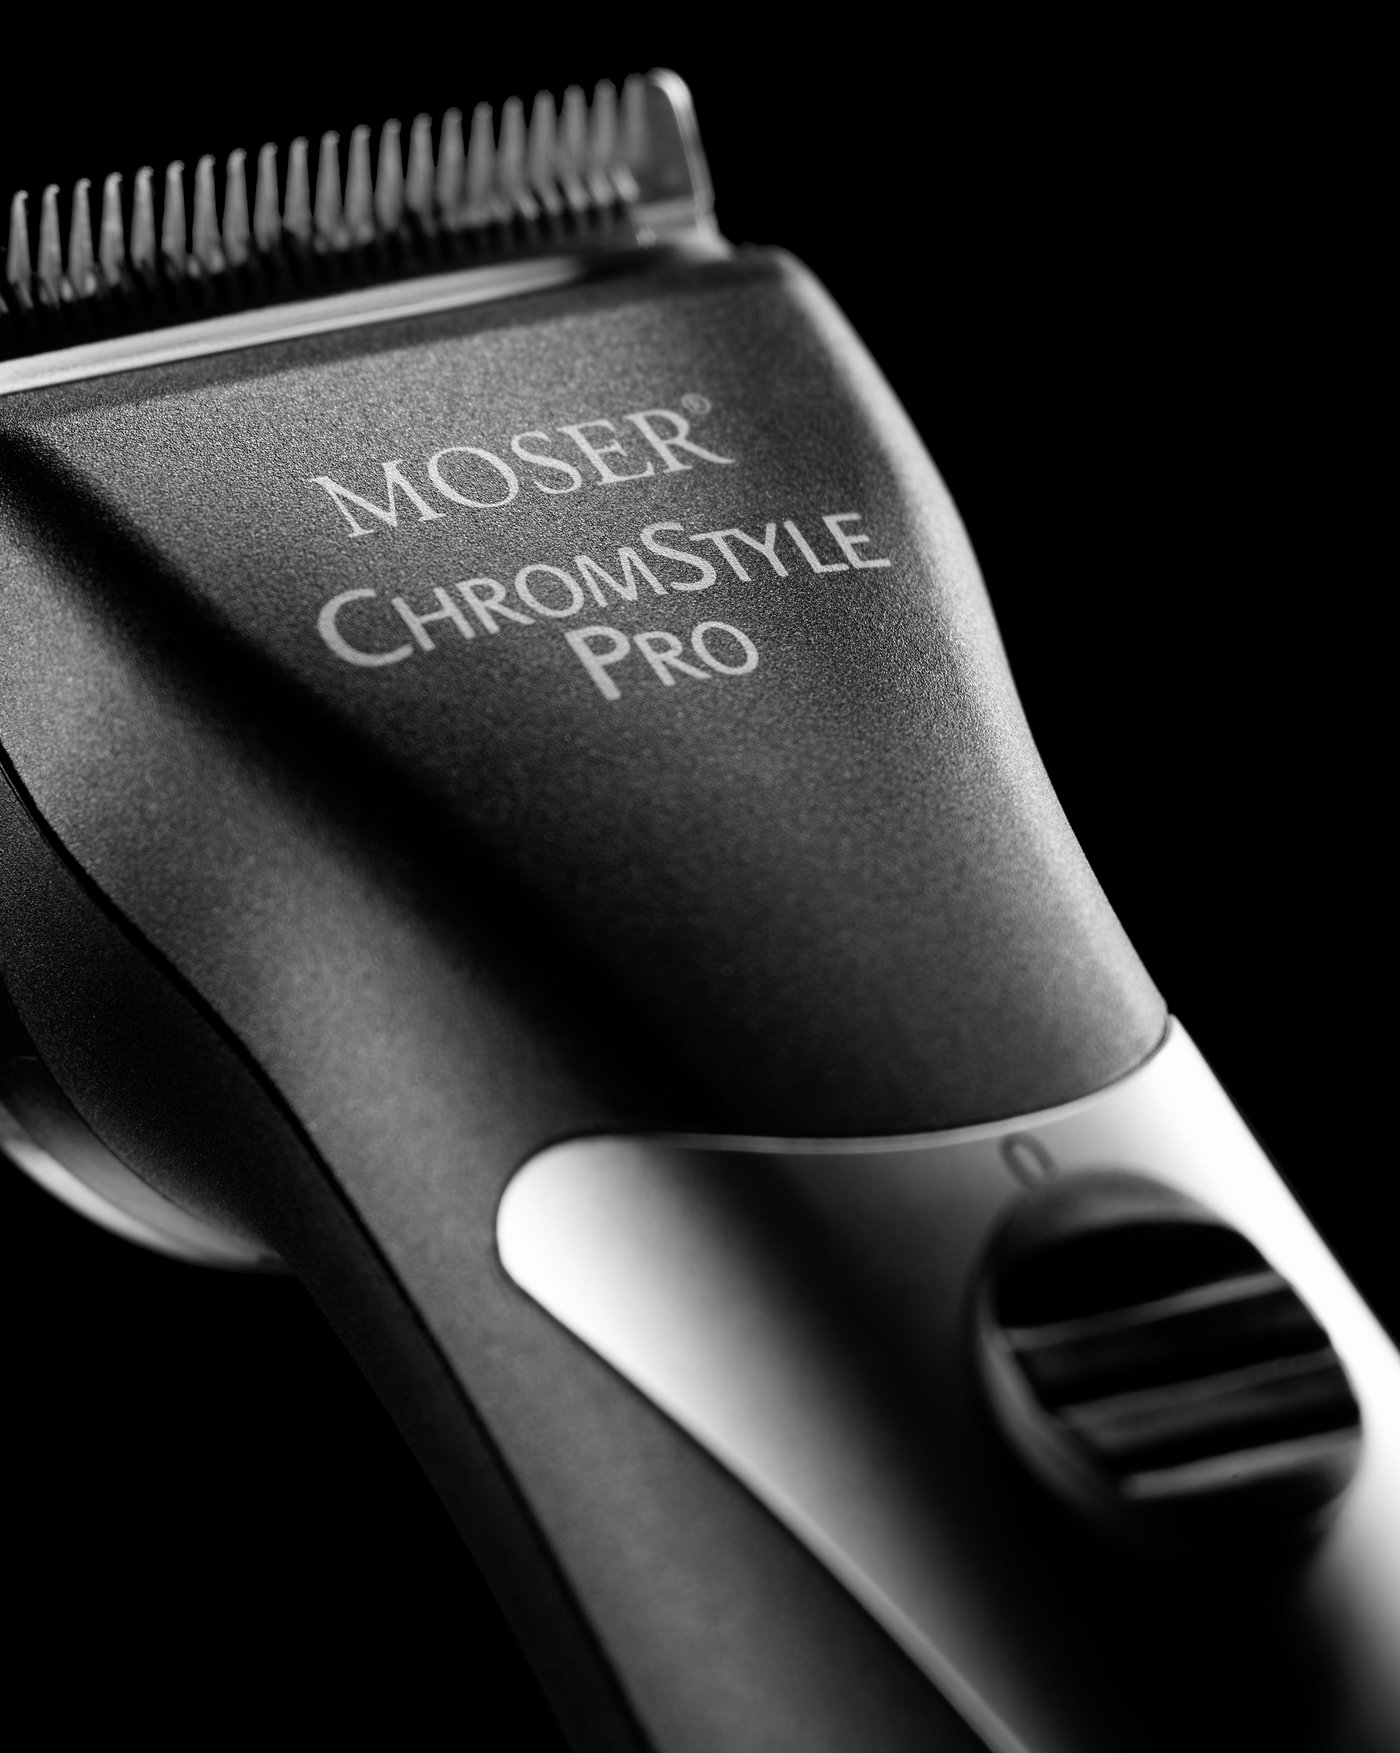 Moser Chrom Style Pro 2